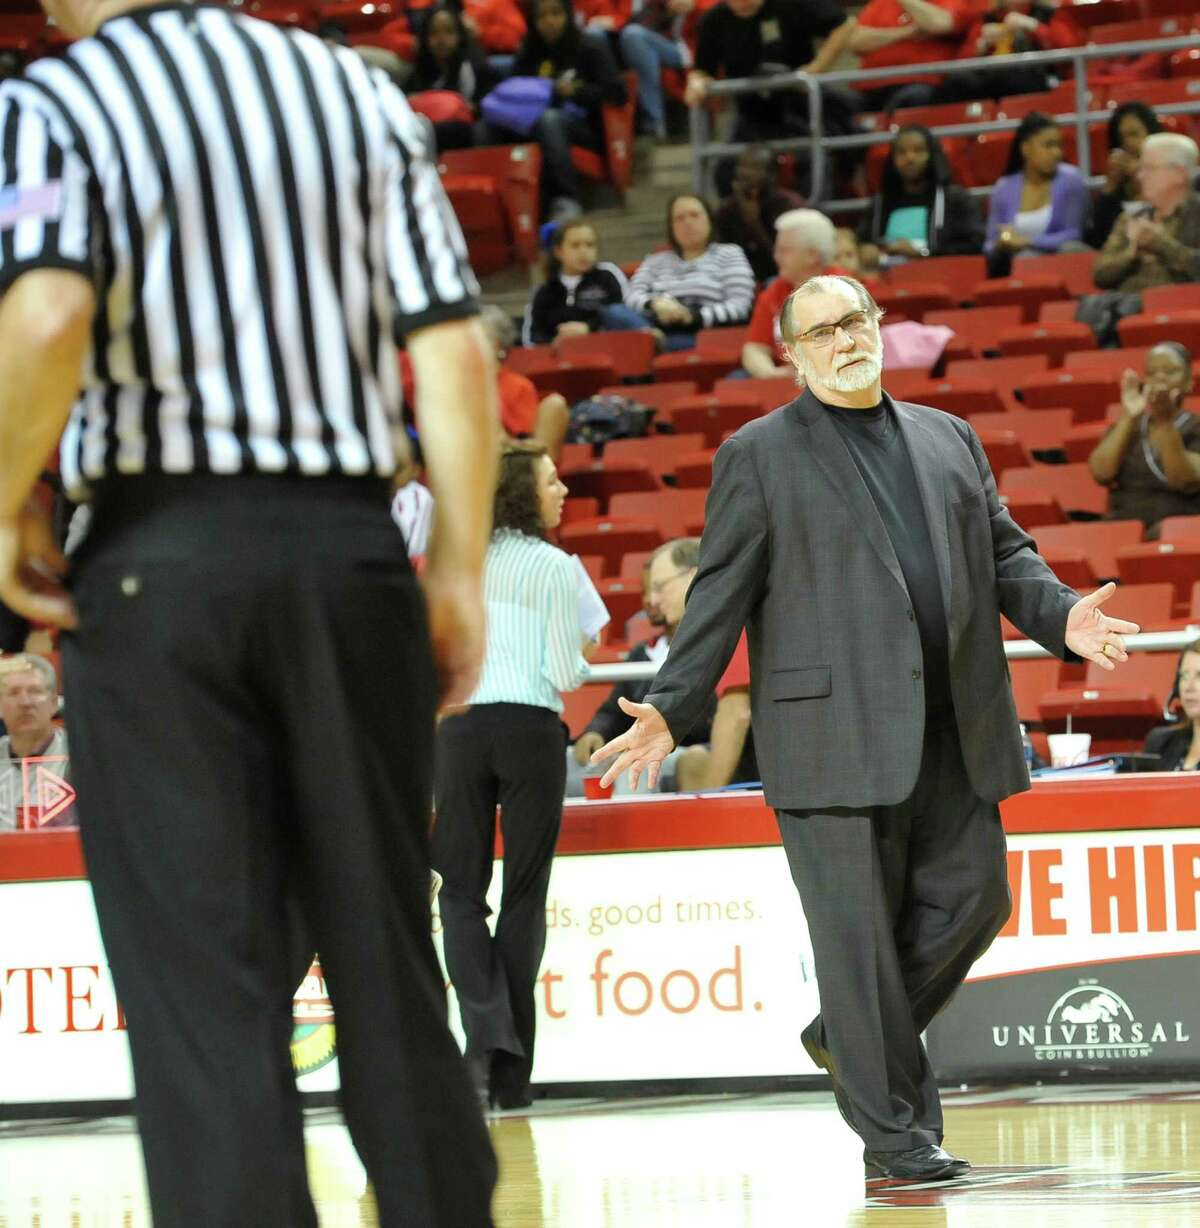 Head Coach Larry Tidwell, right, gestures to a referee as he leaves the court after the first half of the game. The Lamar University Lady Cardinals tipped off at 5:30 p.m. against the Northwestern State Lady Demons Thursday night. Dave Ryan/The Enterprise